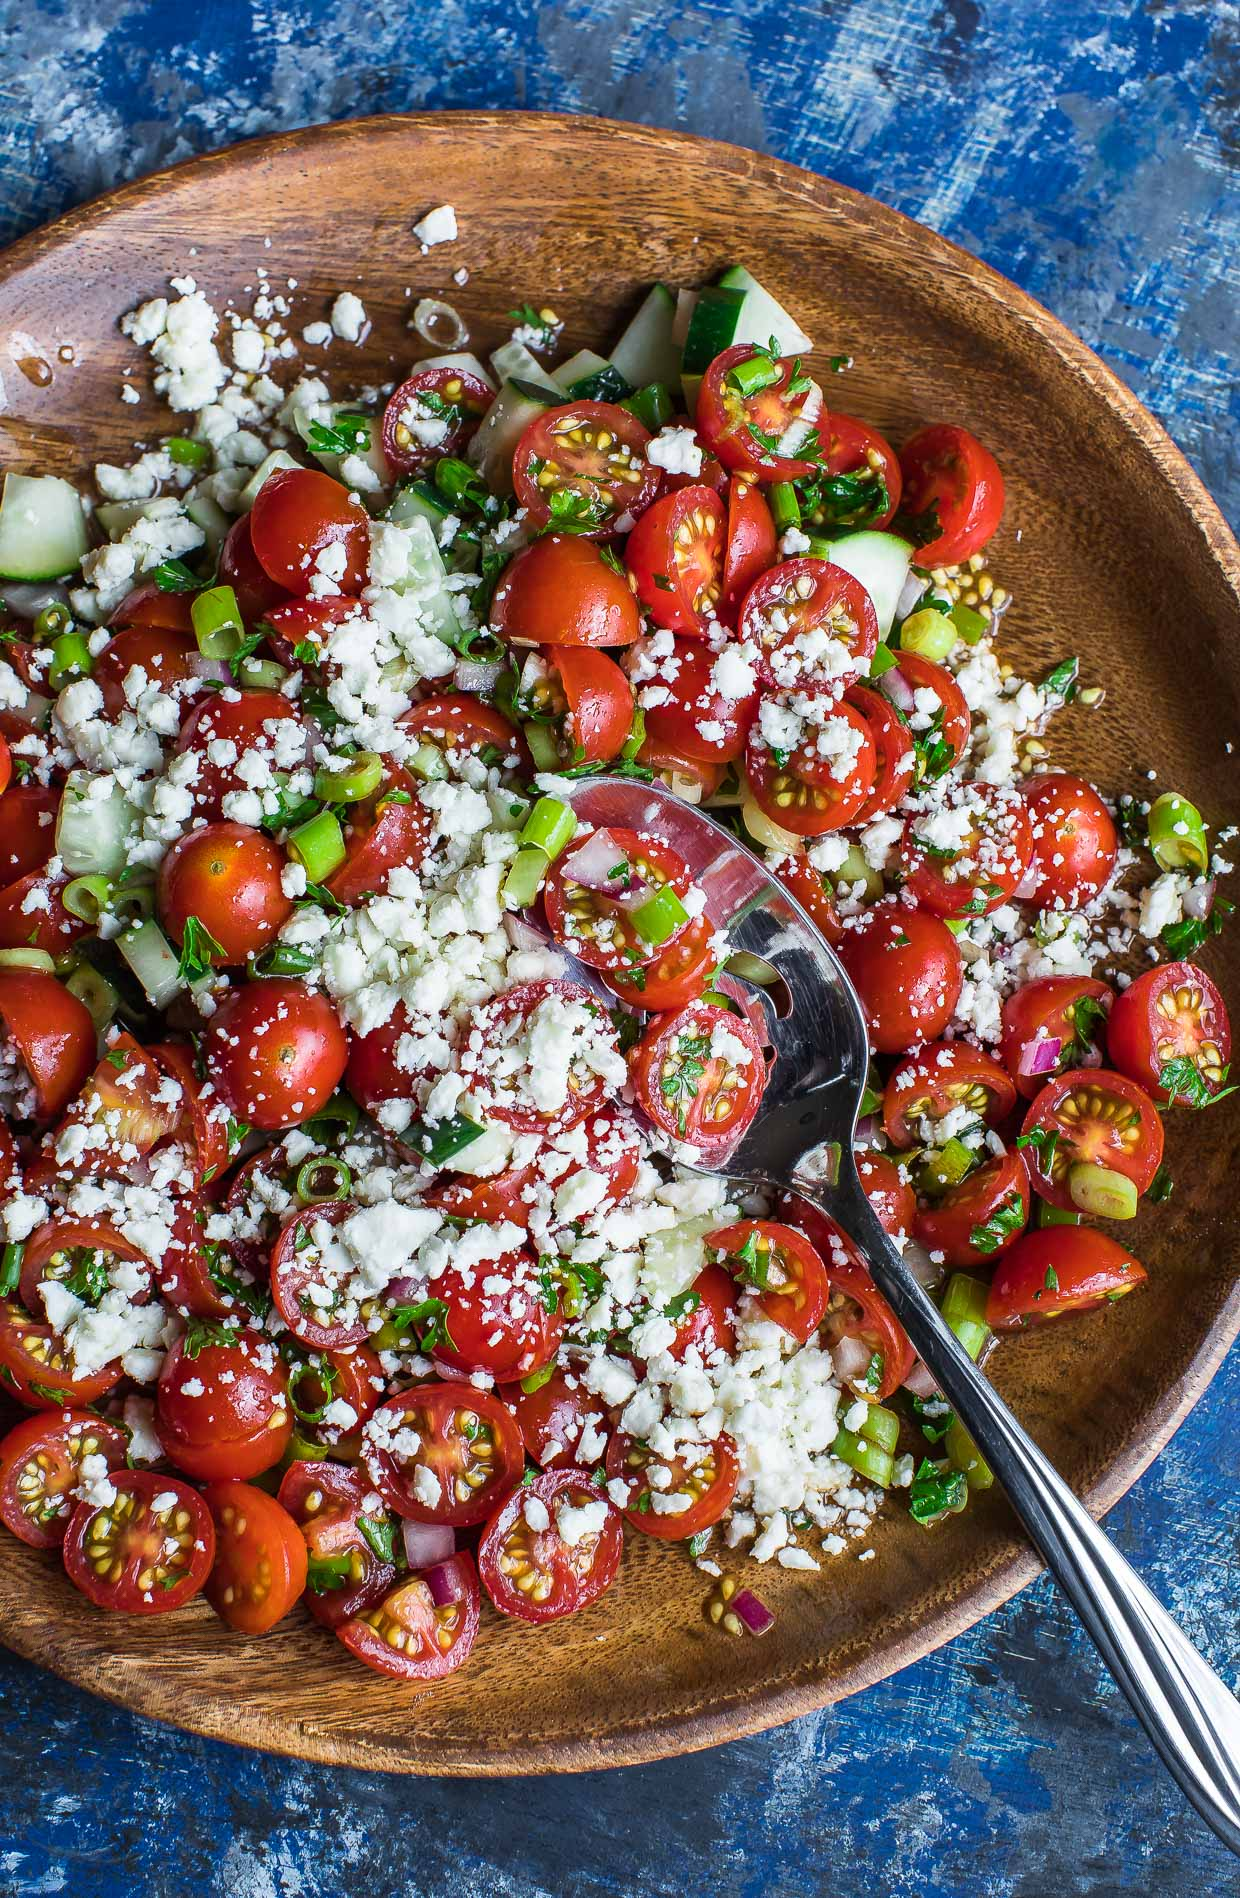 10 Tasty Cherry Tomato Recipes: Quick + Easy Cherry Tomato Salad